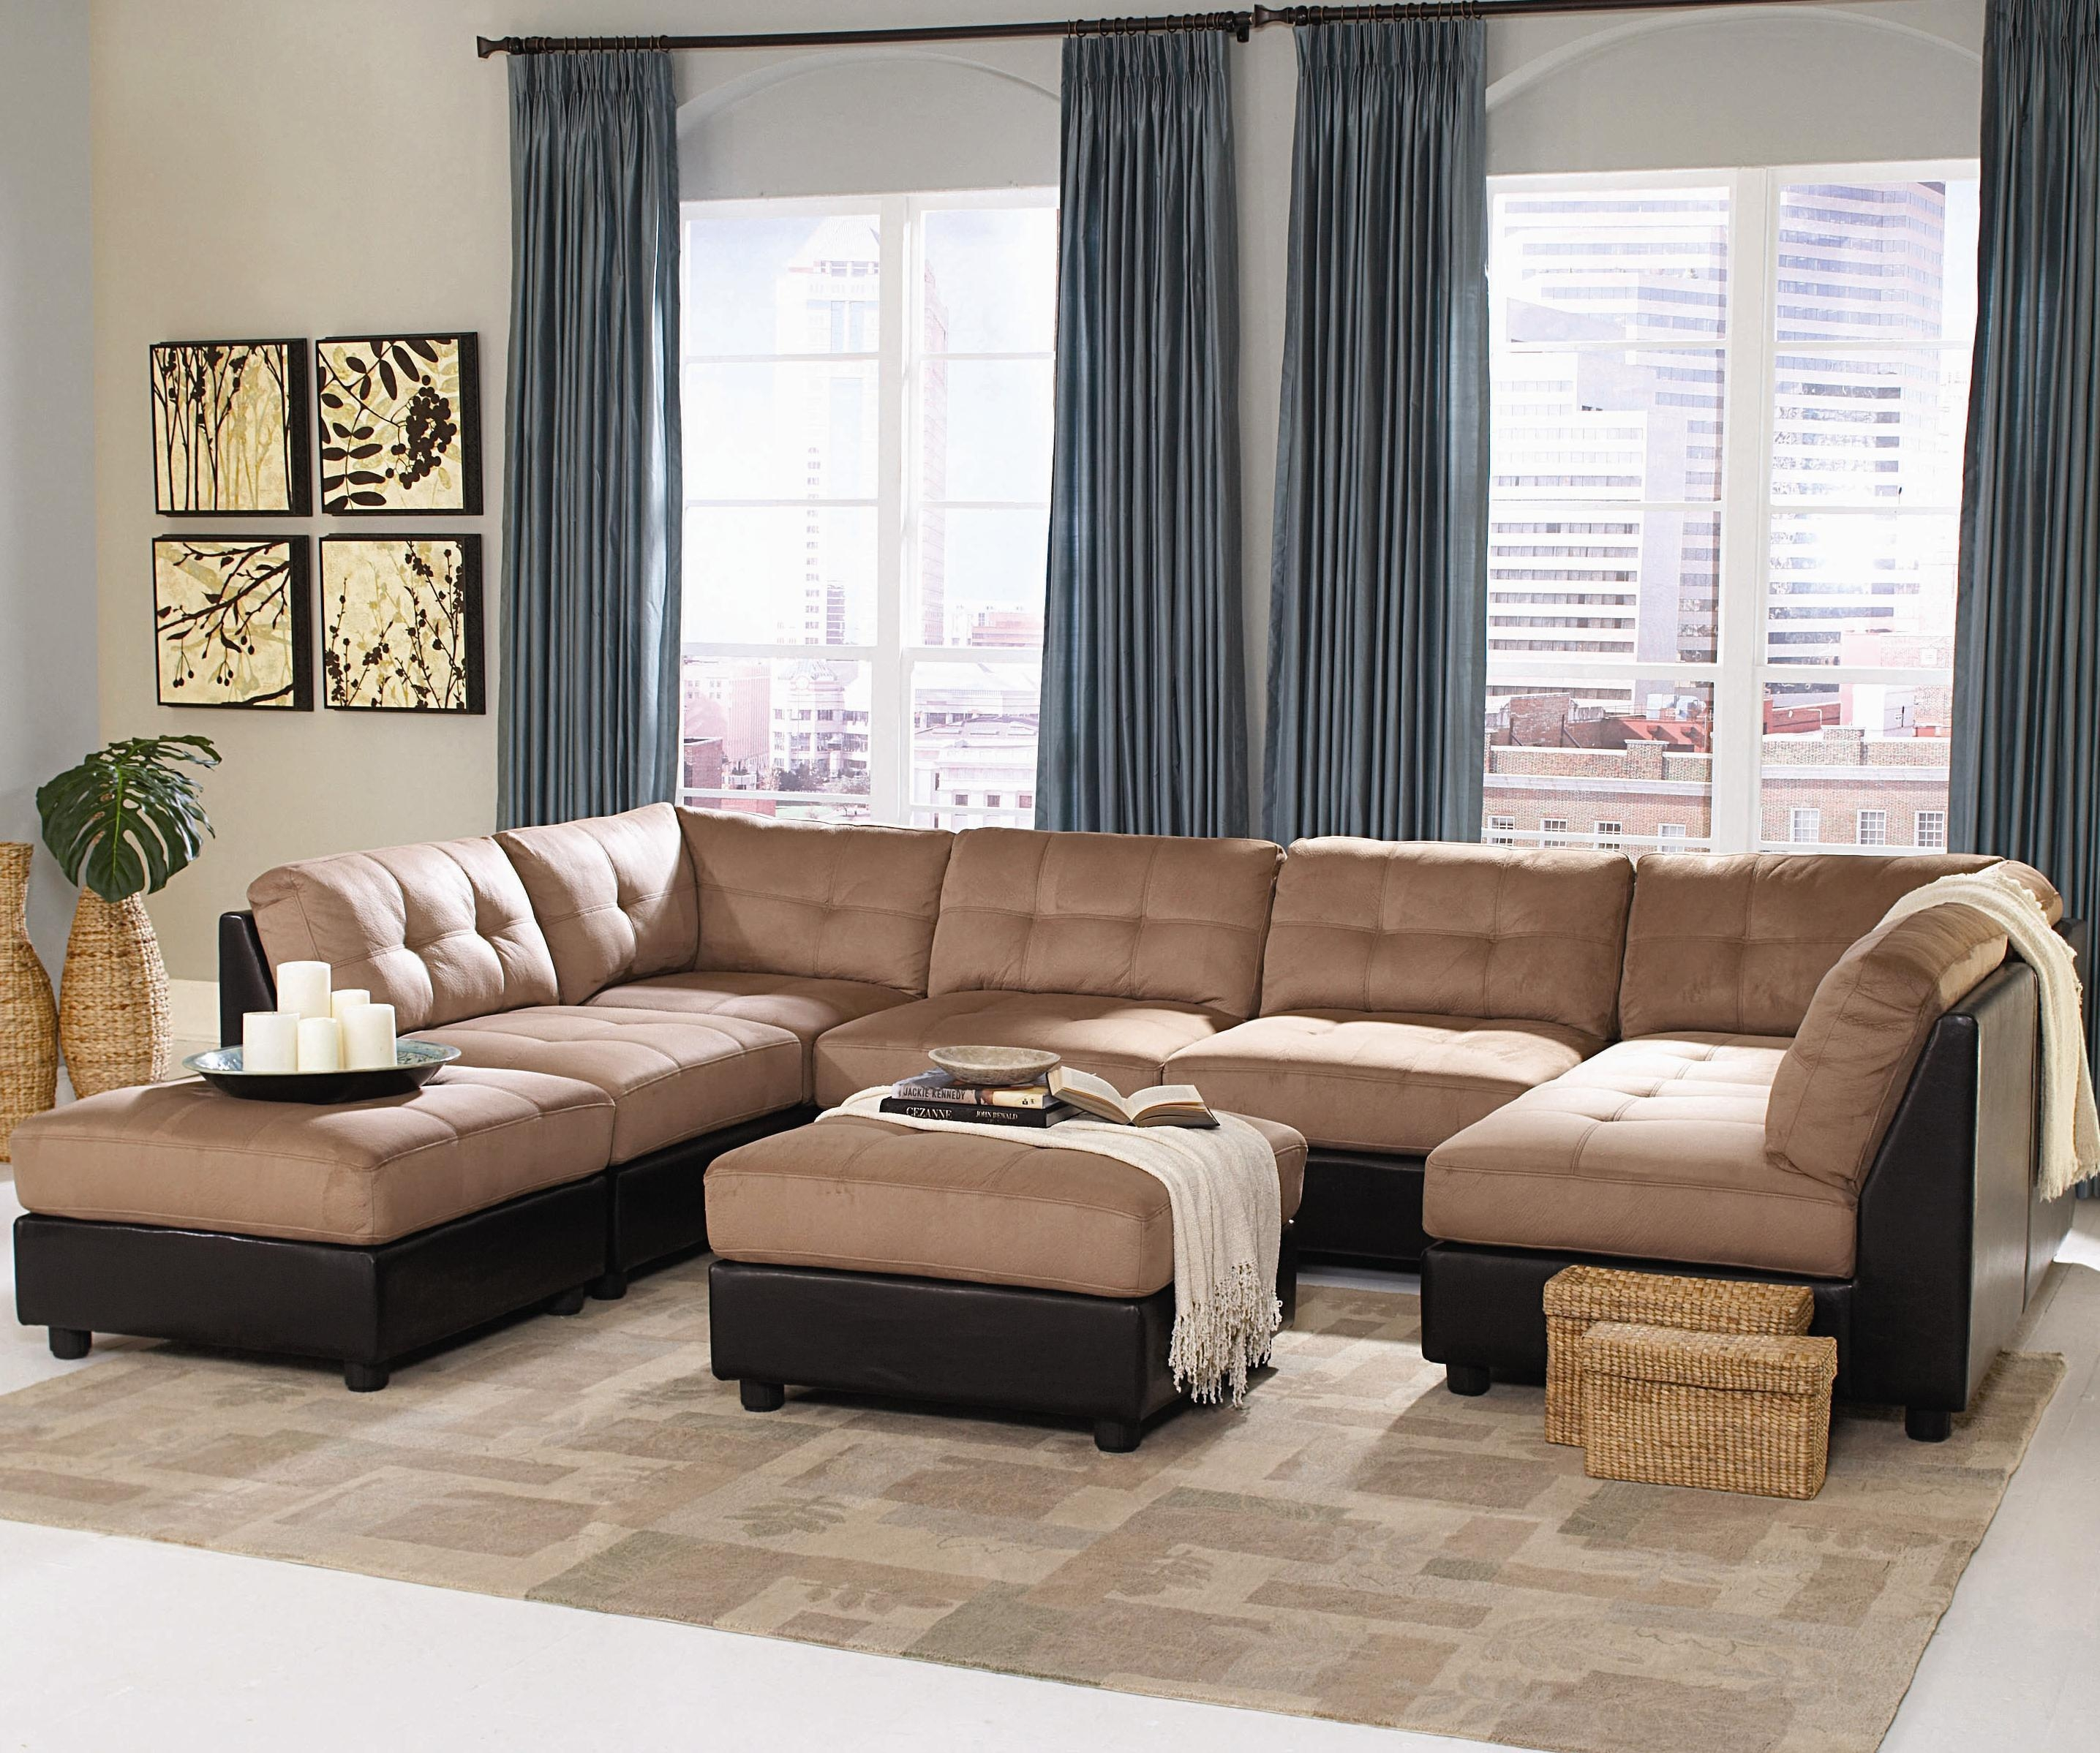 room and board sofas sectionals small sofa beds for es 20 top traditional sectional living furniture